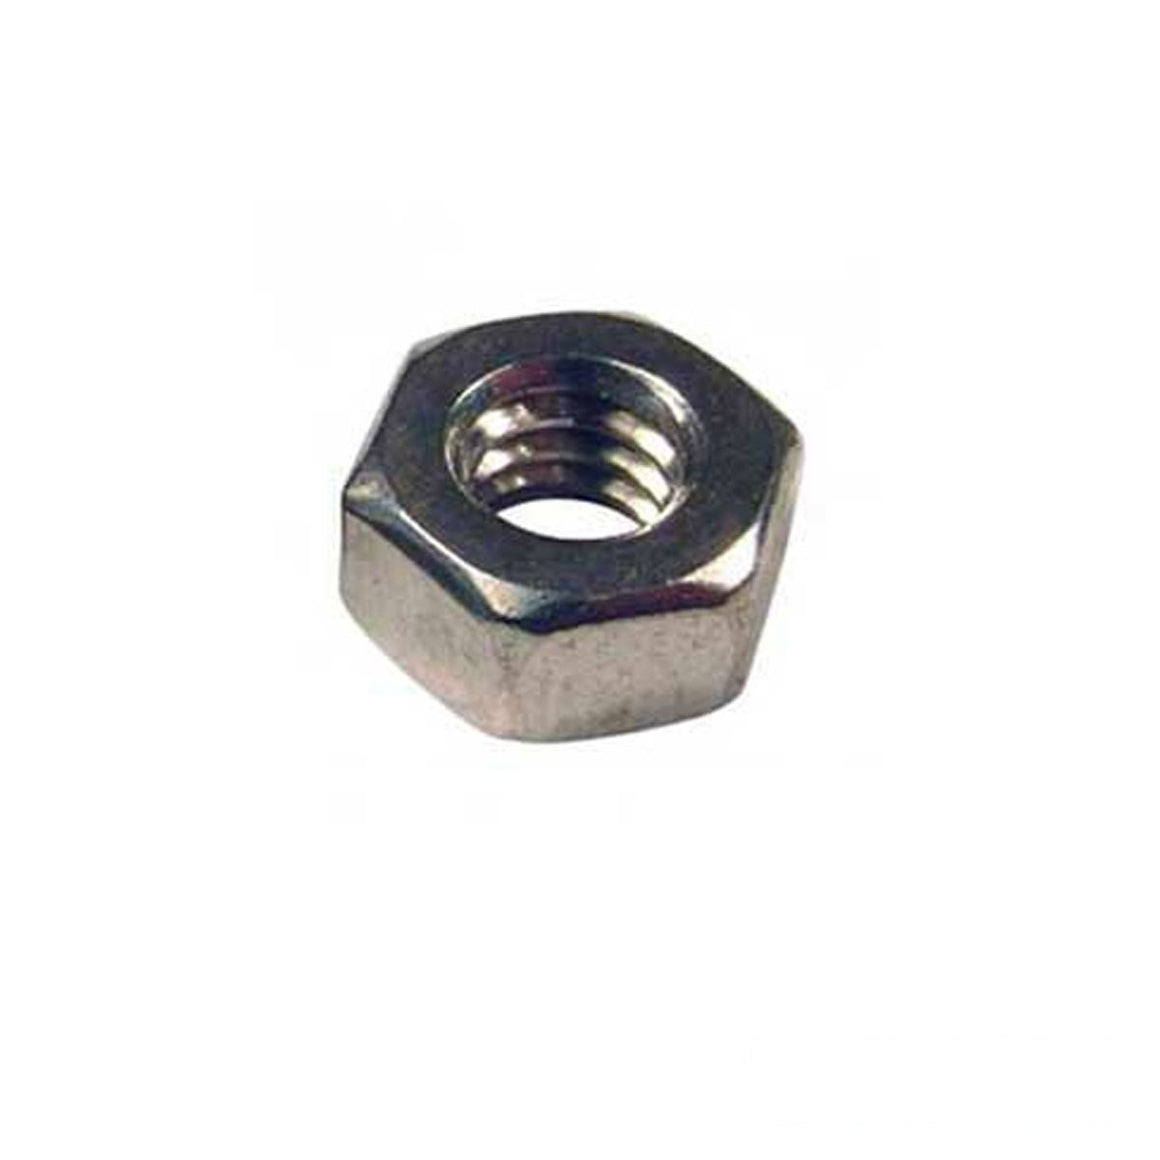 0-80 Stainless Steel Nuts